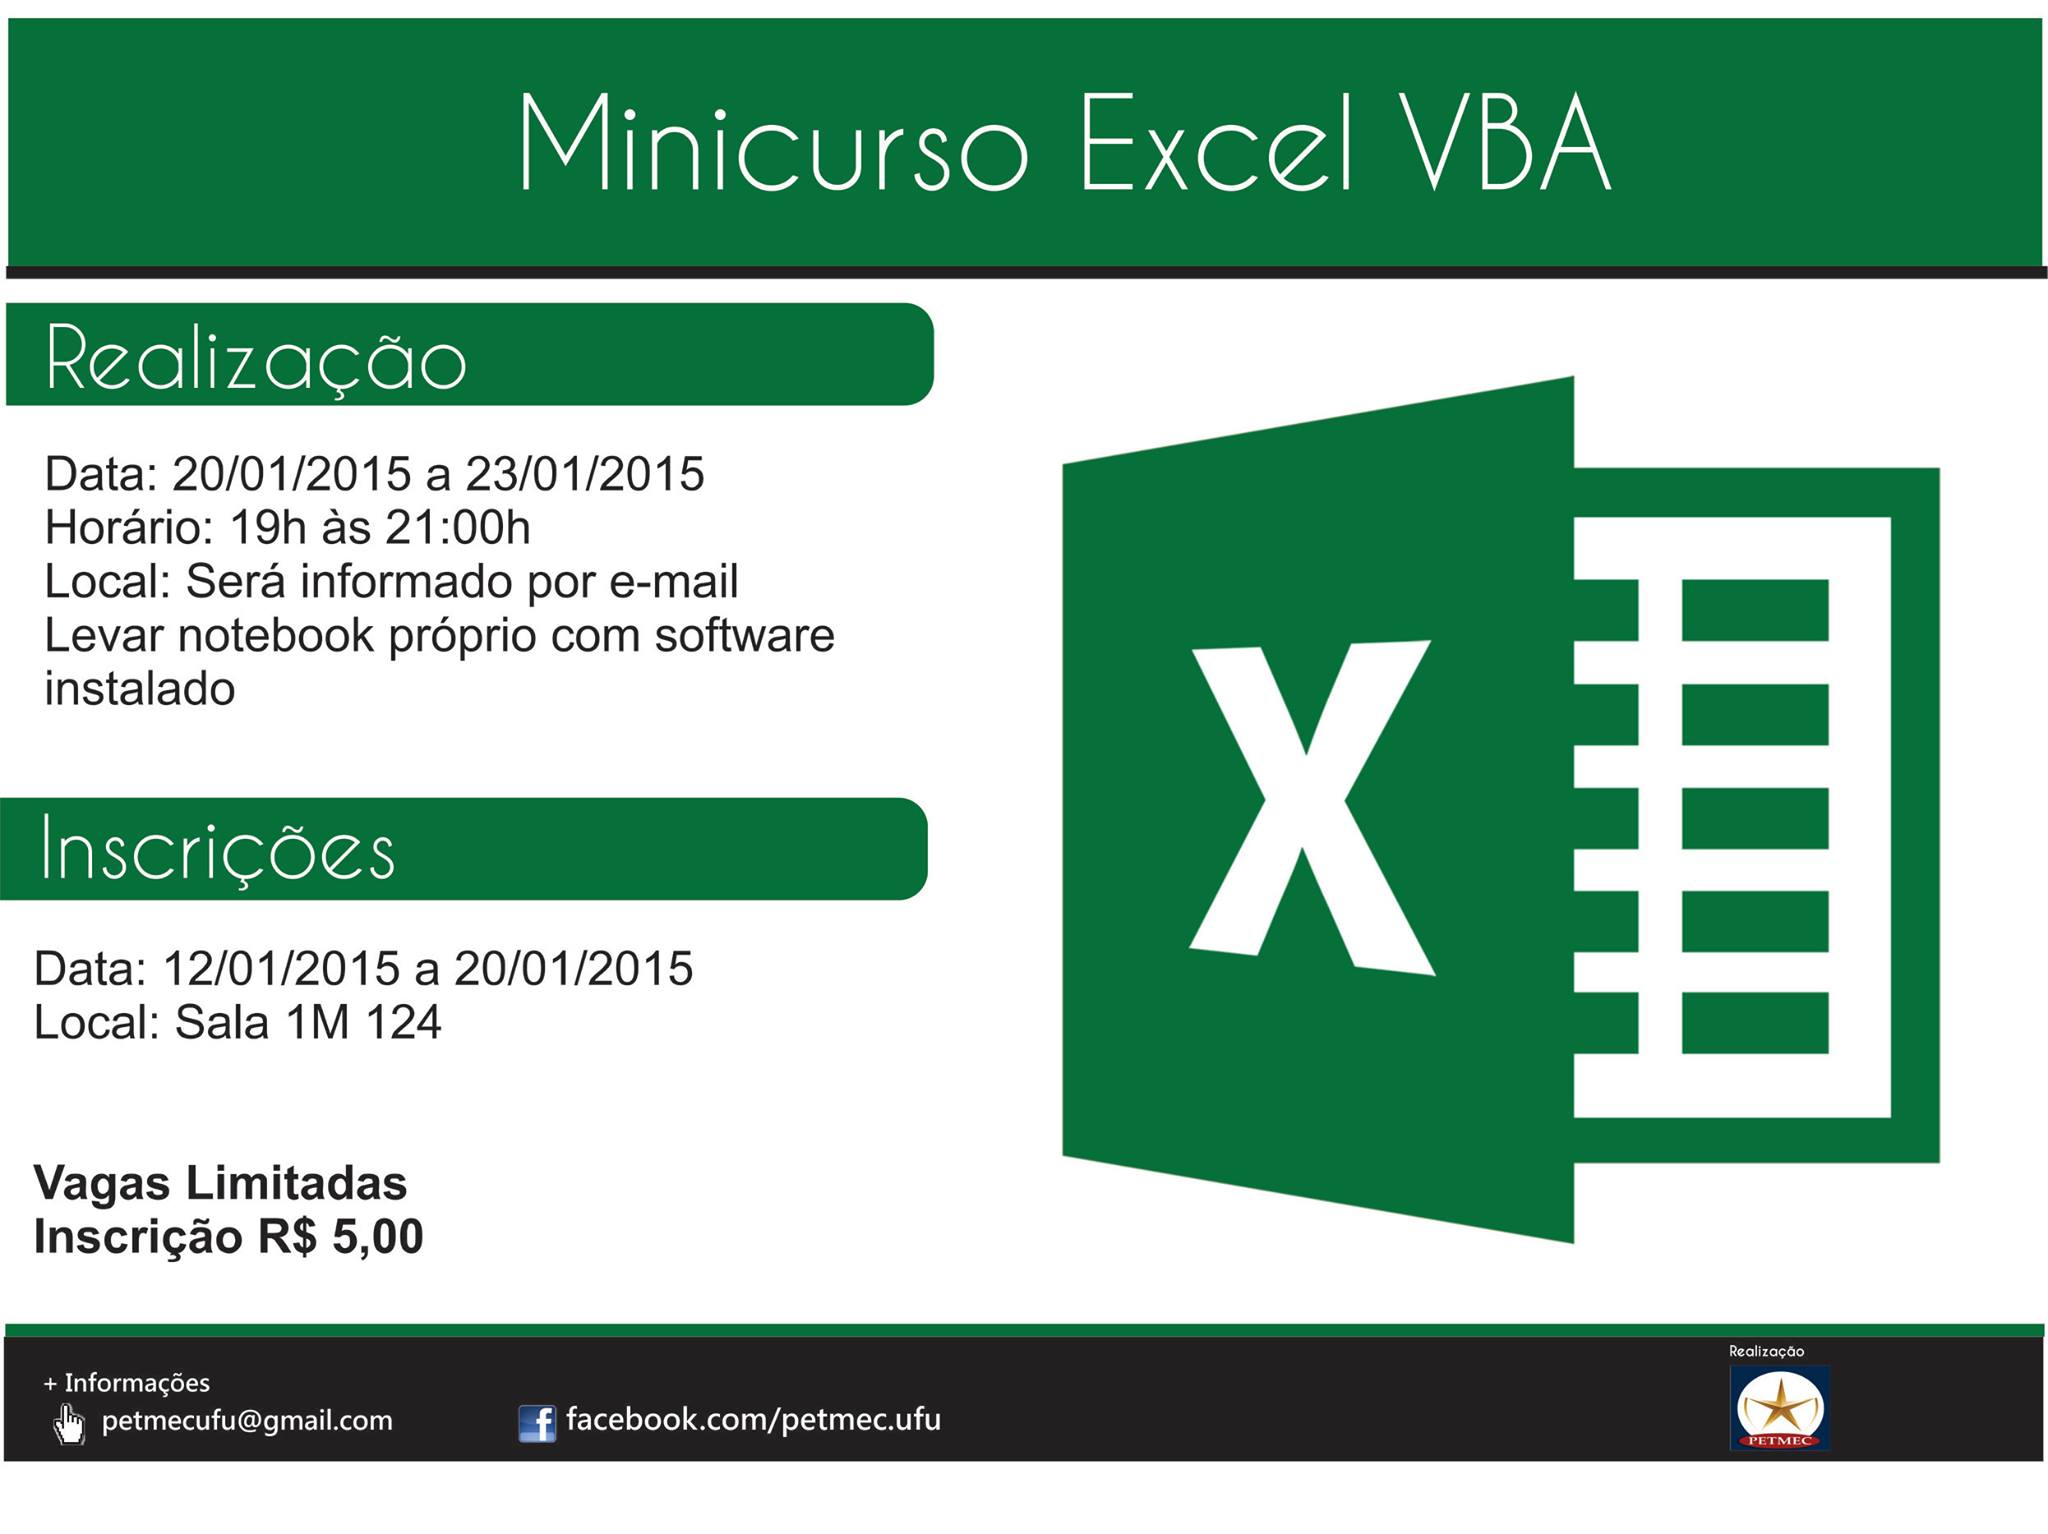 vba tutor Learn excel vba programming & macros with free step by step tutorials, download pdf that has 1200+ macros this is an ultimate guide to learn excel vba you will also get a list of vba books and two popular courses from udemy that are really helpful for basic and advanced excel vba users.